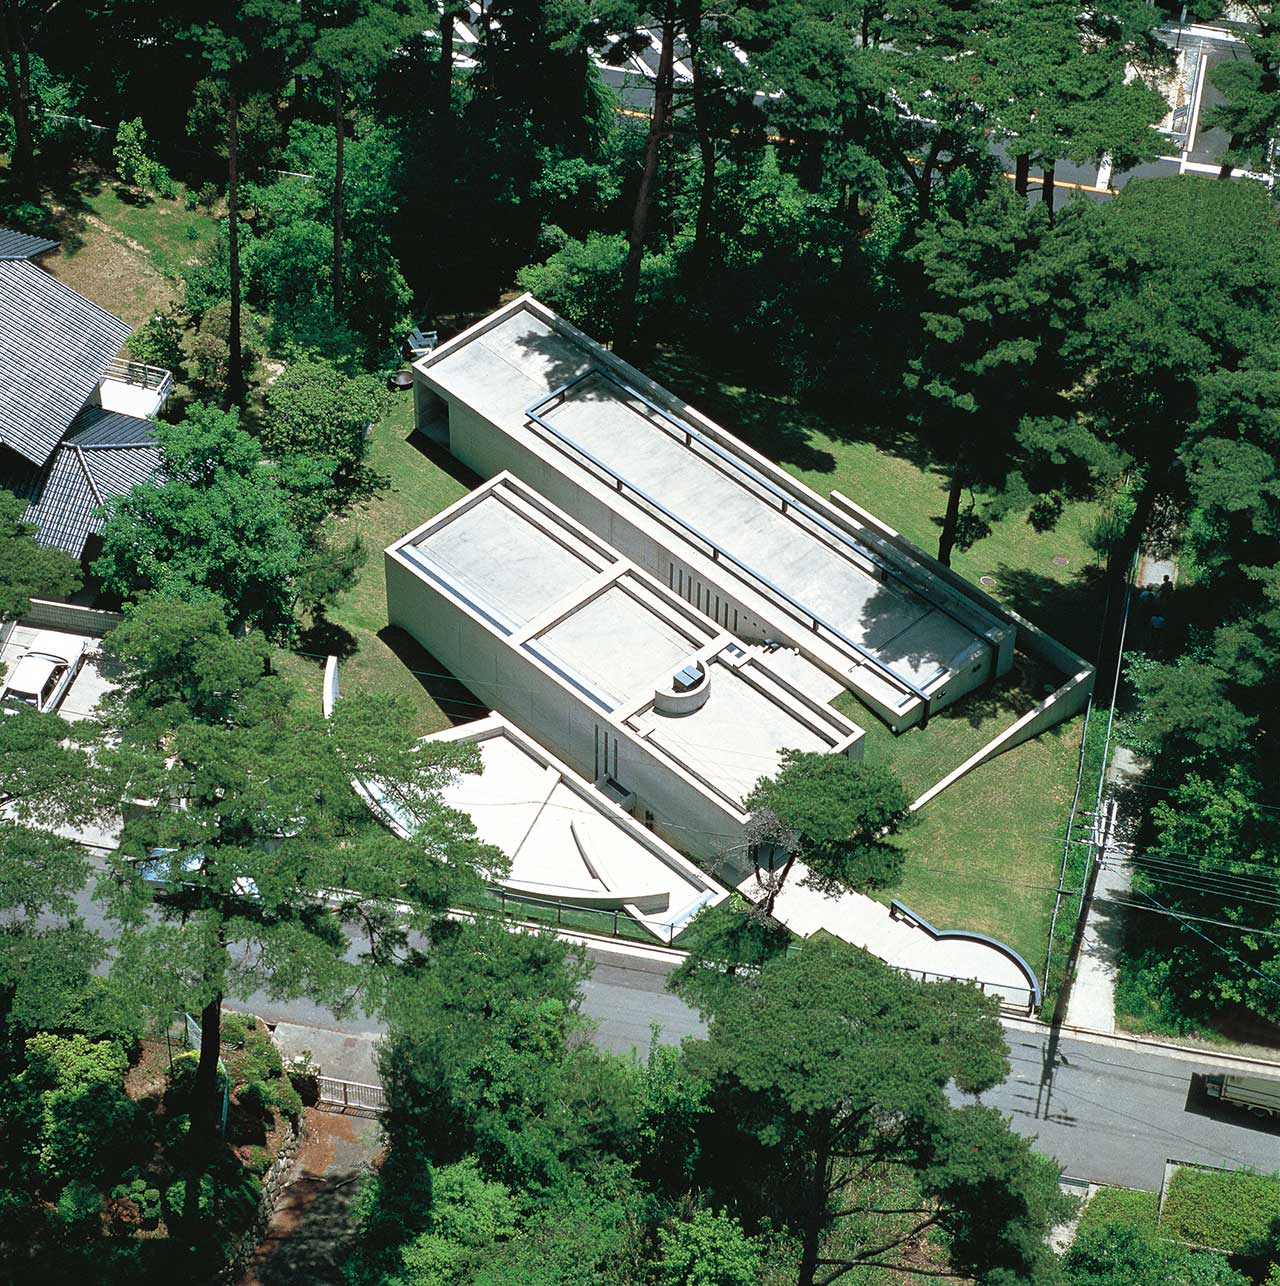 Koshino House, 1981/1984, Ashiya, Hyogo. Photo by Shinkenchiku-sha.